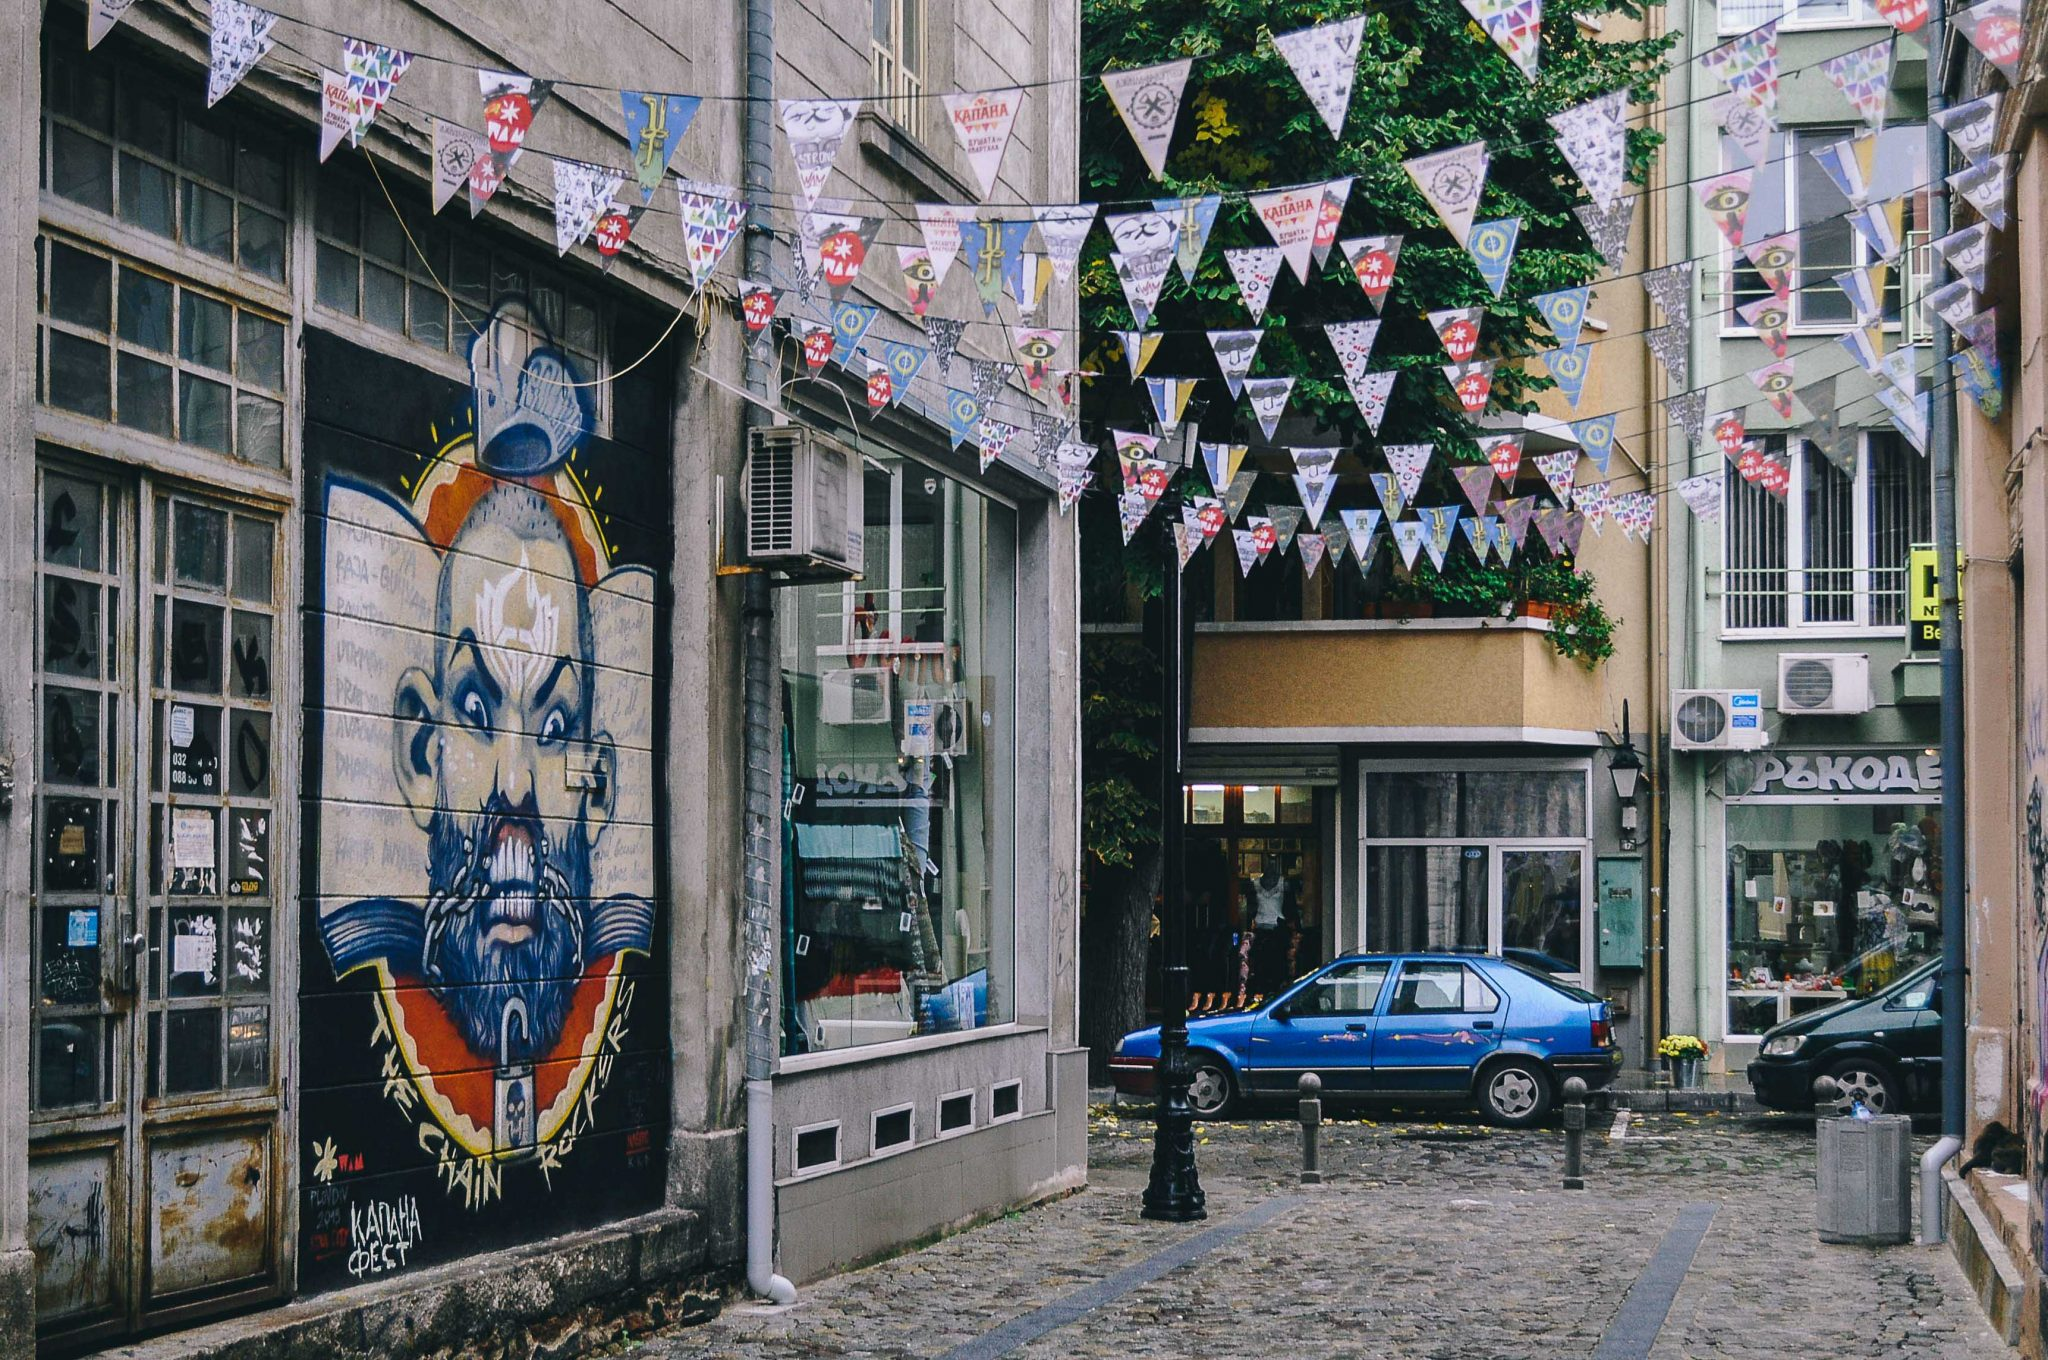 Discover Plovdiv street art and urban culture